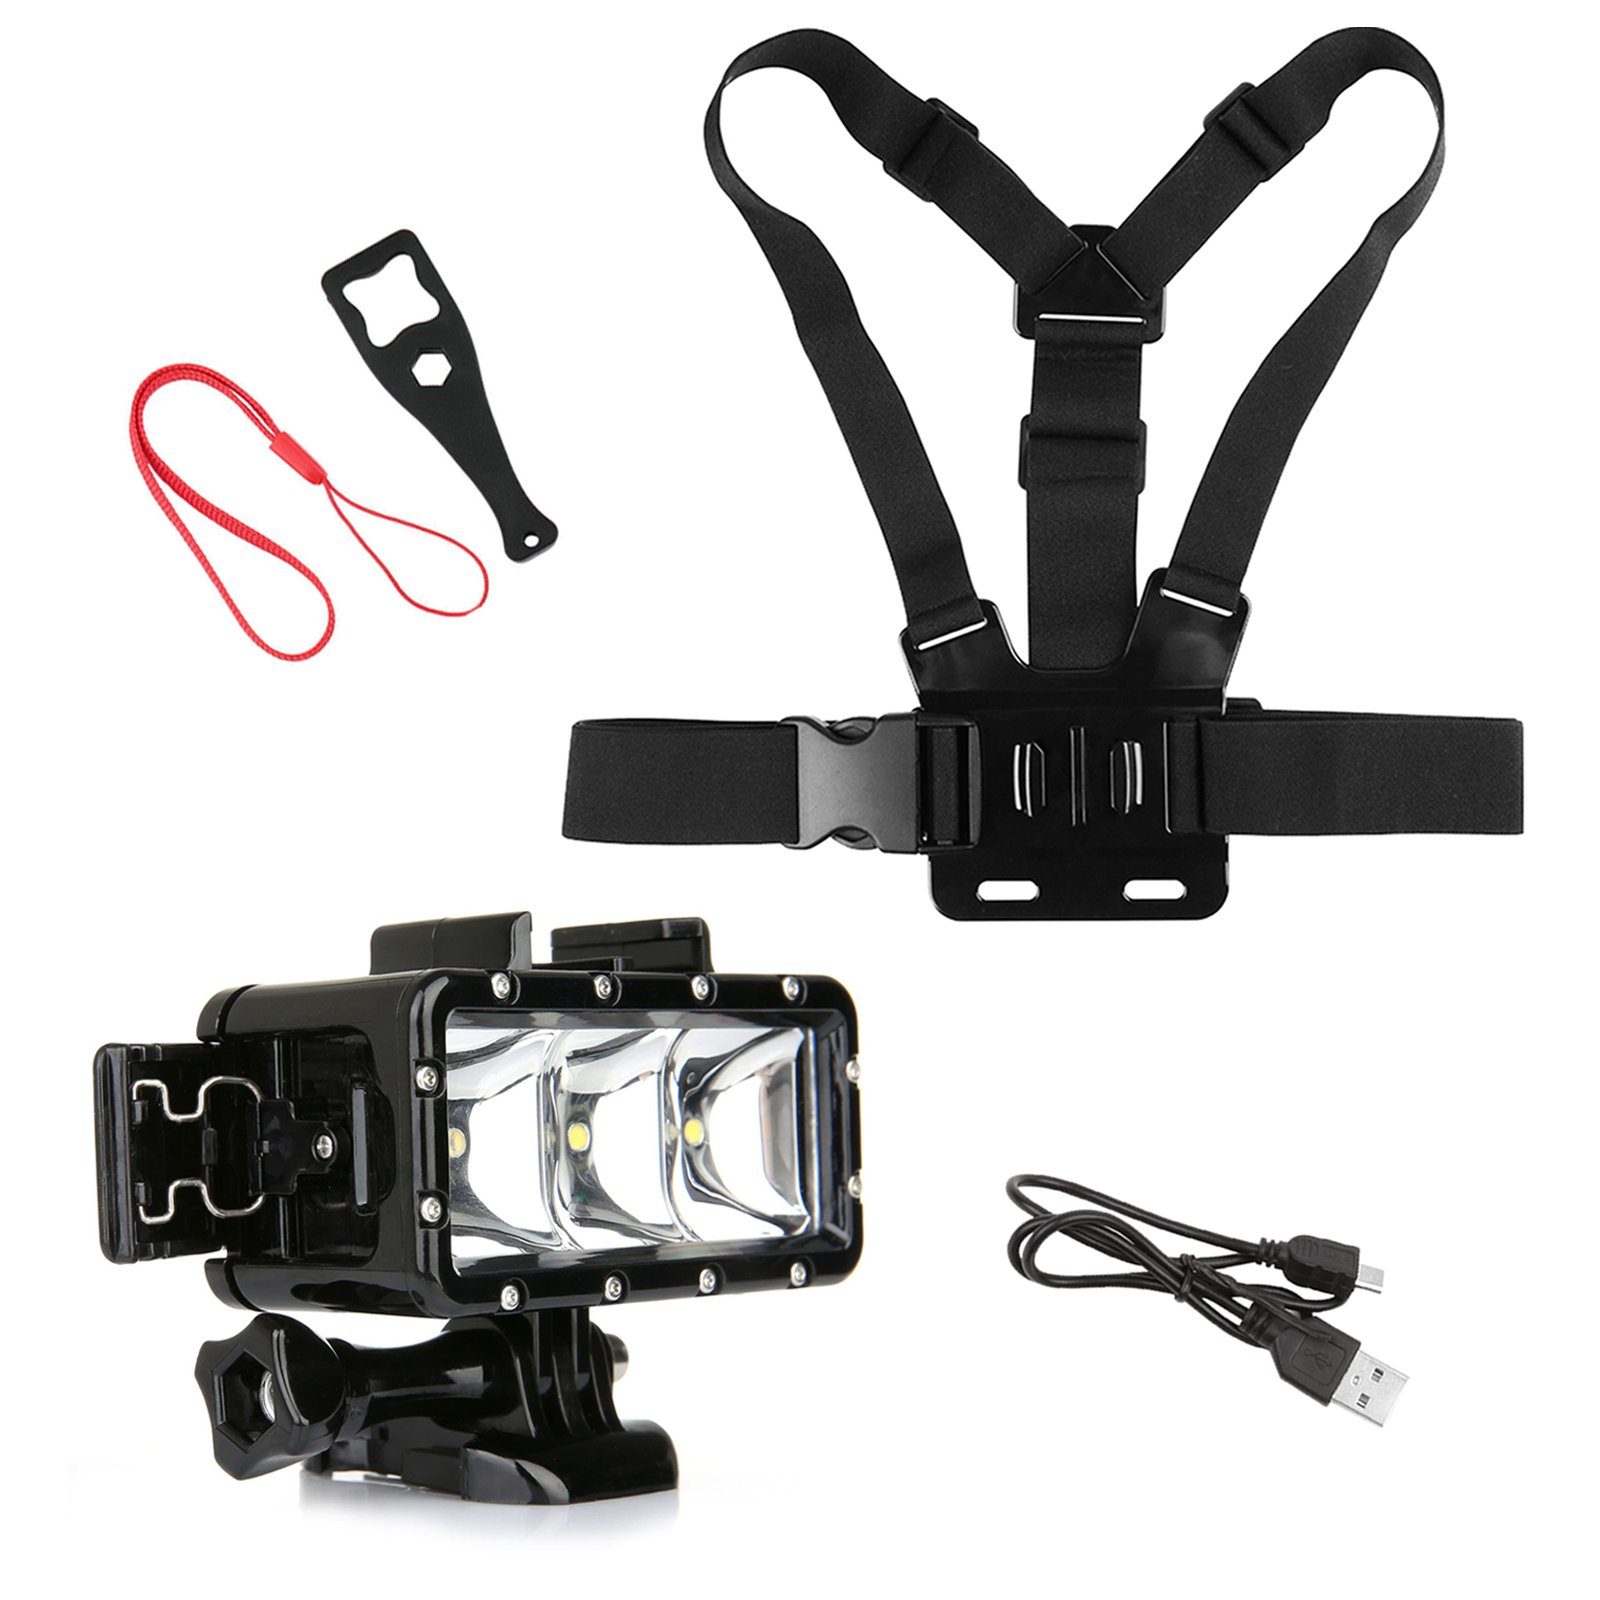 SHOOT Outdoor Diving Accessories Kit for GoPro Hero 6/5/4/3+/3/5 Session/4 Session/HERO(2018)/Fusion AKASO DBPOWER Crosstour FITFORT Camera Sports Underwater LED Flashlight Chest Strap